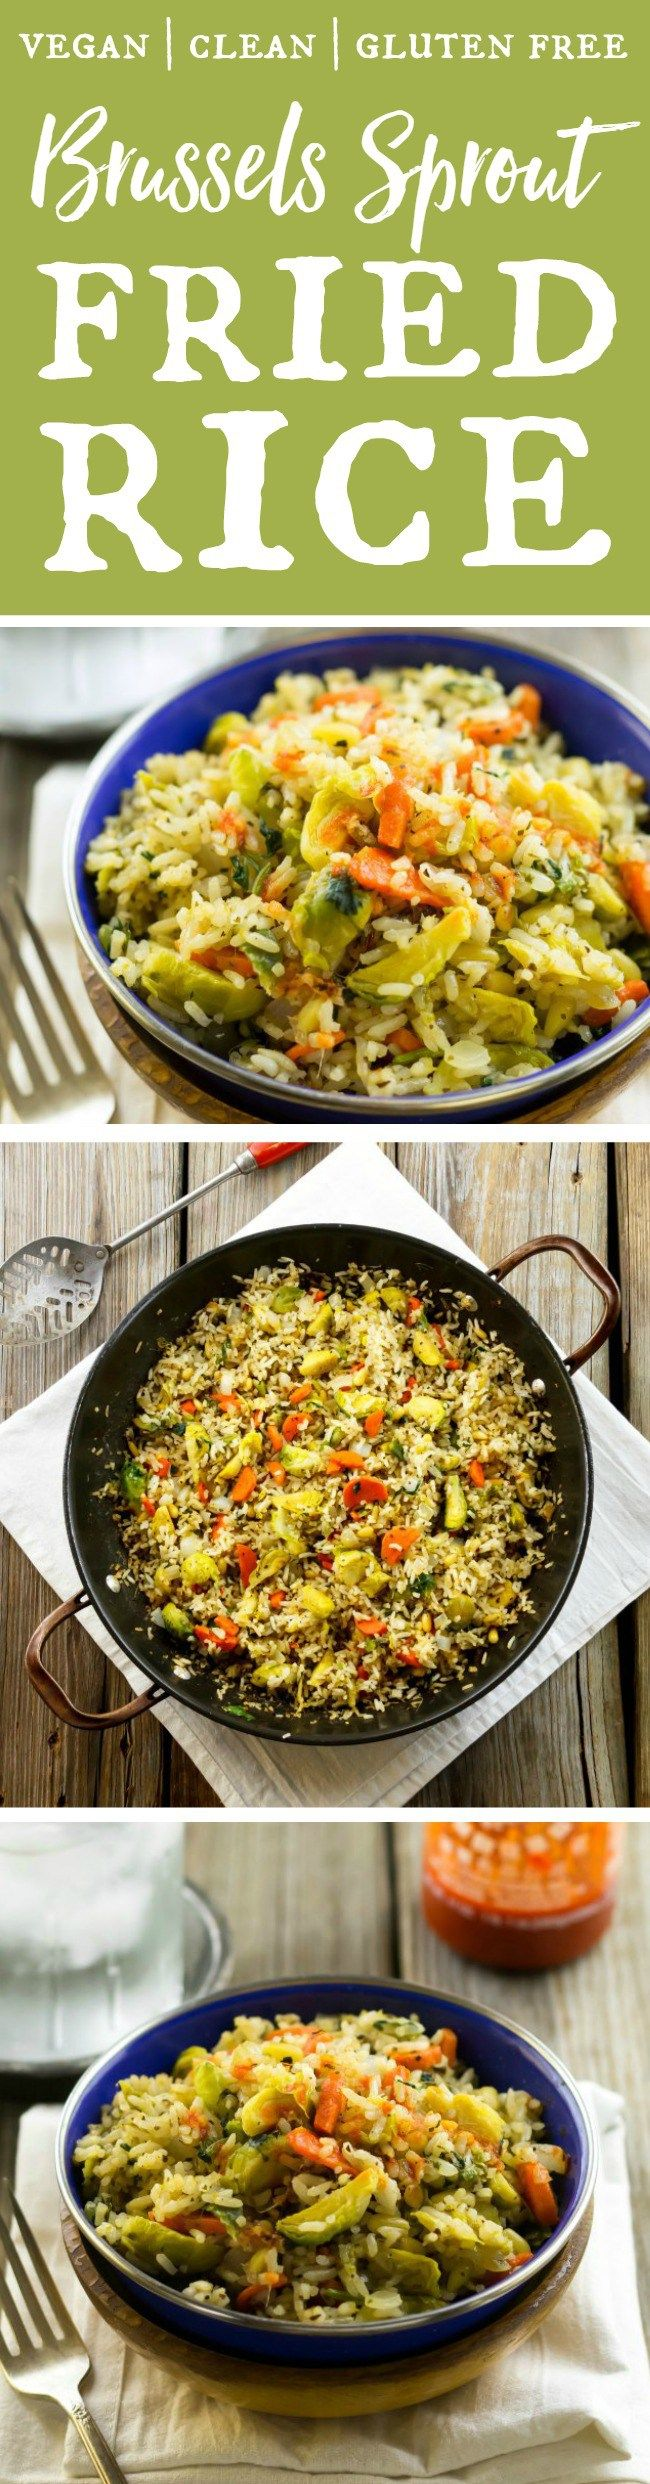 If you love sprouts, you have to try this Brussels Sprout Fried Rice. It's healthy, filling and packed with delicious flavor. The recipe is from the Vegan With A Vengeance 10th Anniversary Edition by Isa Chandra Moskowitz. One of my favorite cookbooks!